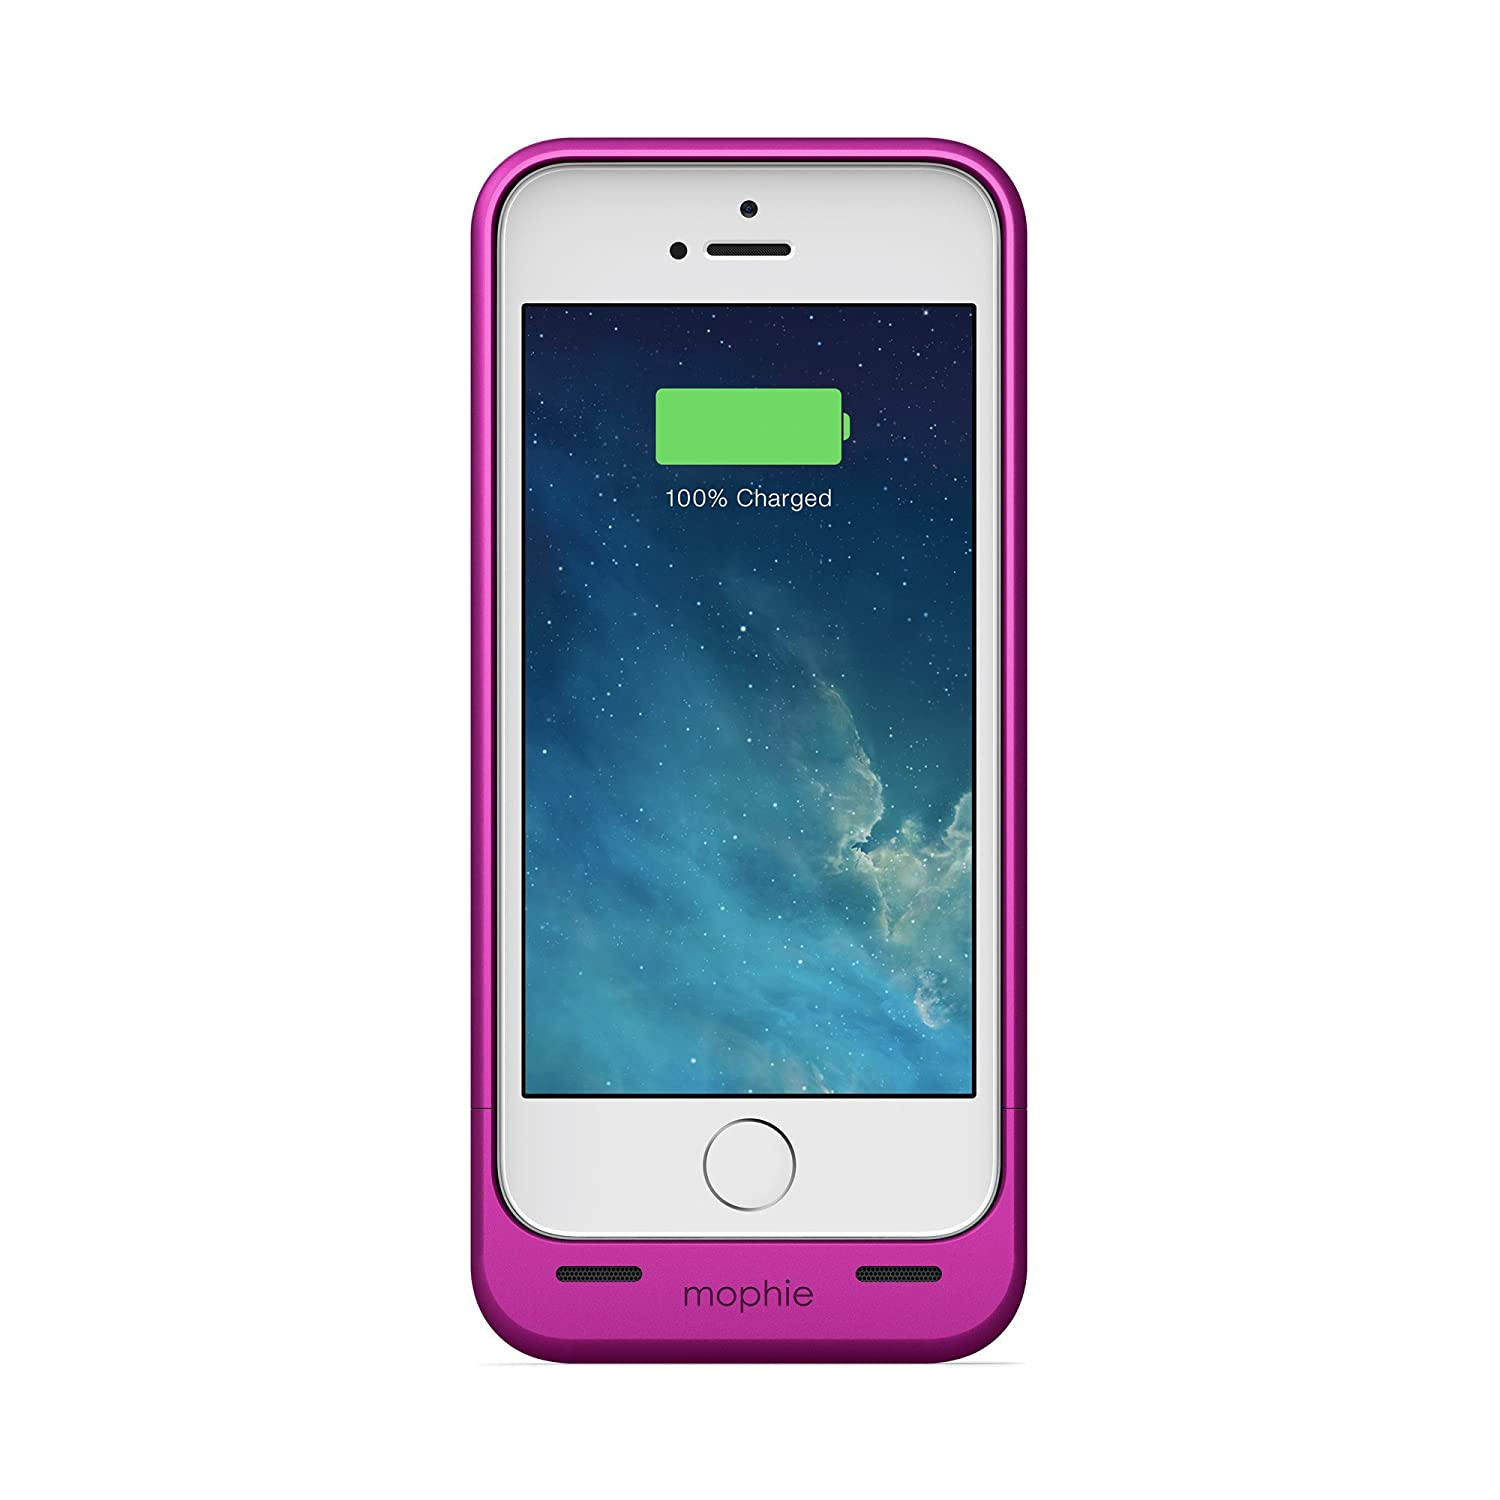 Mophie Extended Battery Case for iPhone 5/5S-Retail Packaging, Metallic Pink Sound Around MOP-2544-IP5PNKI